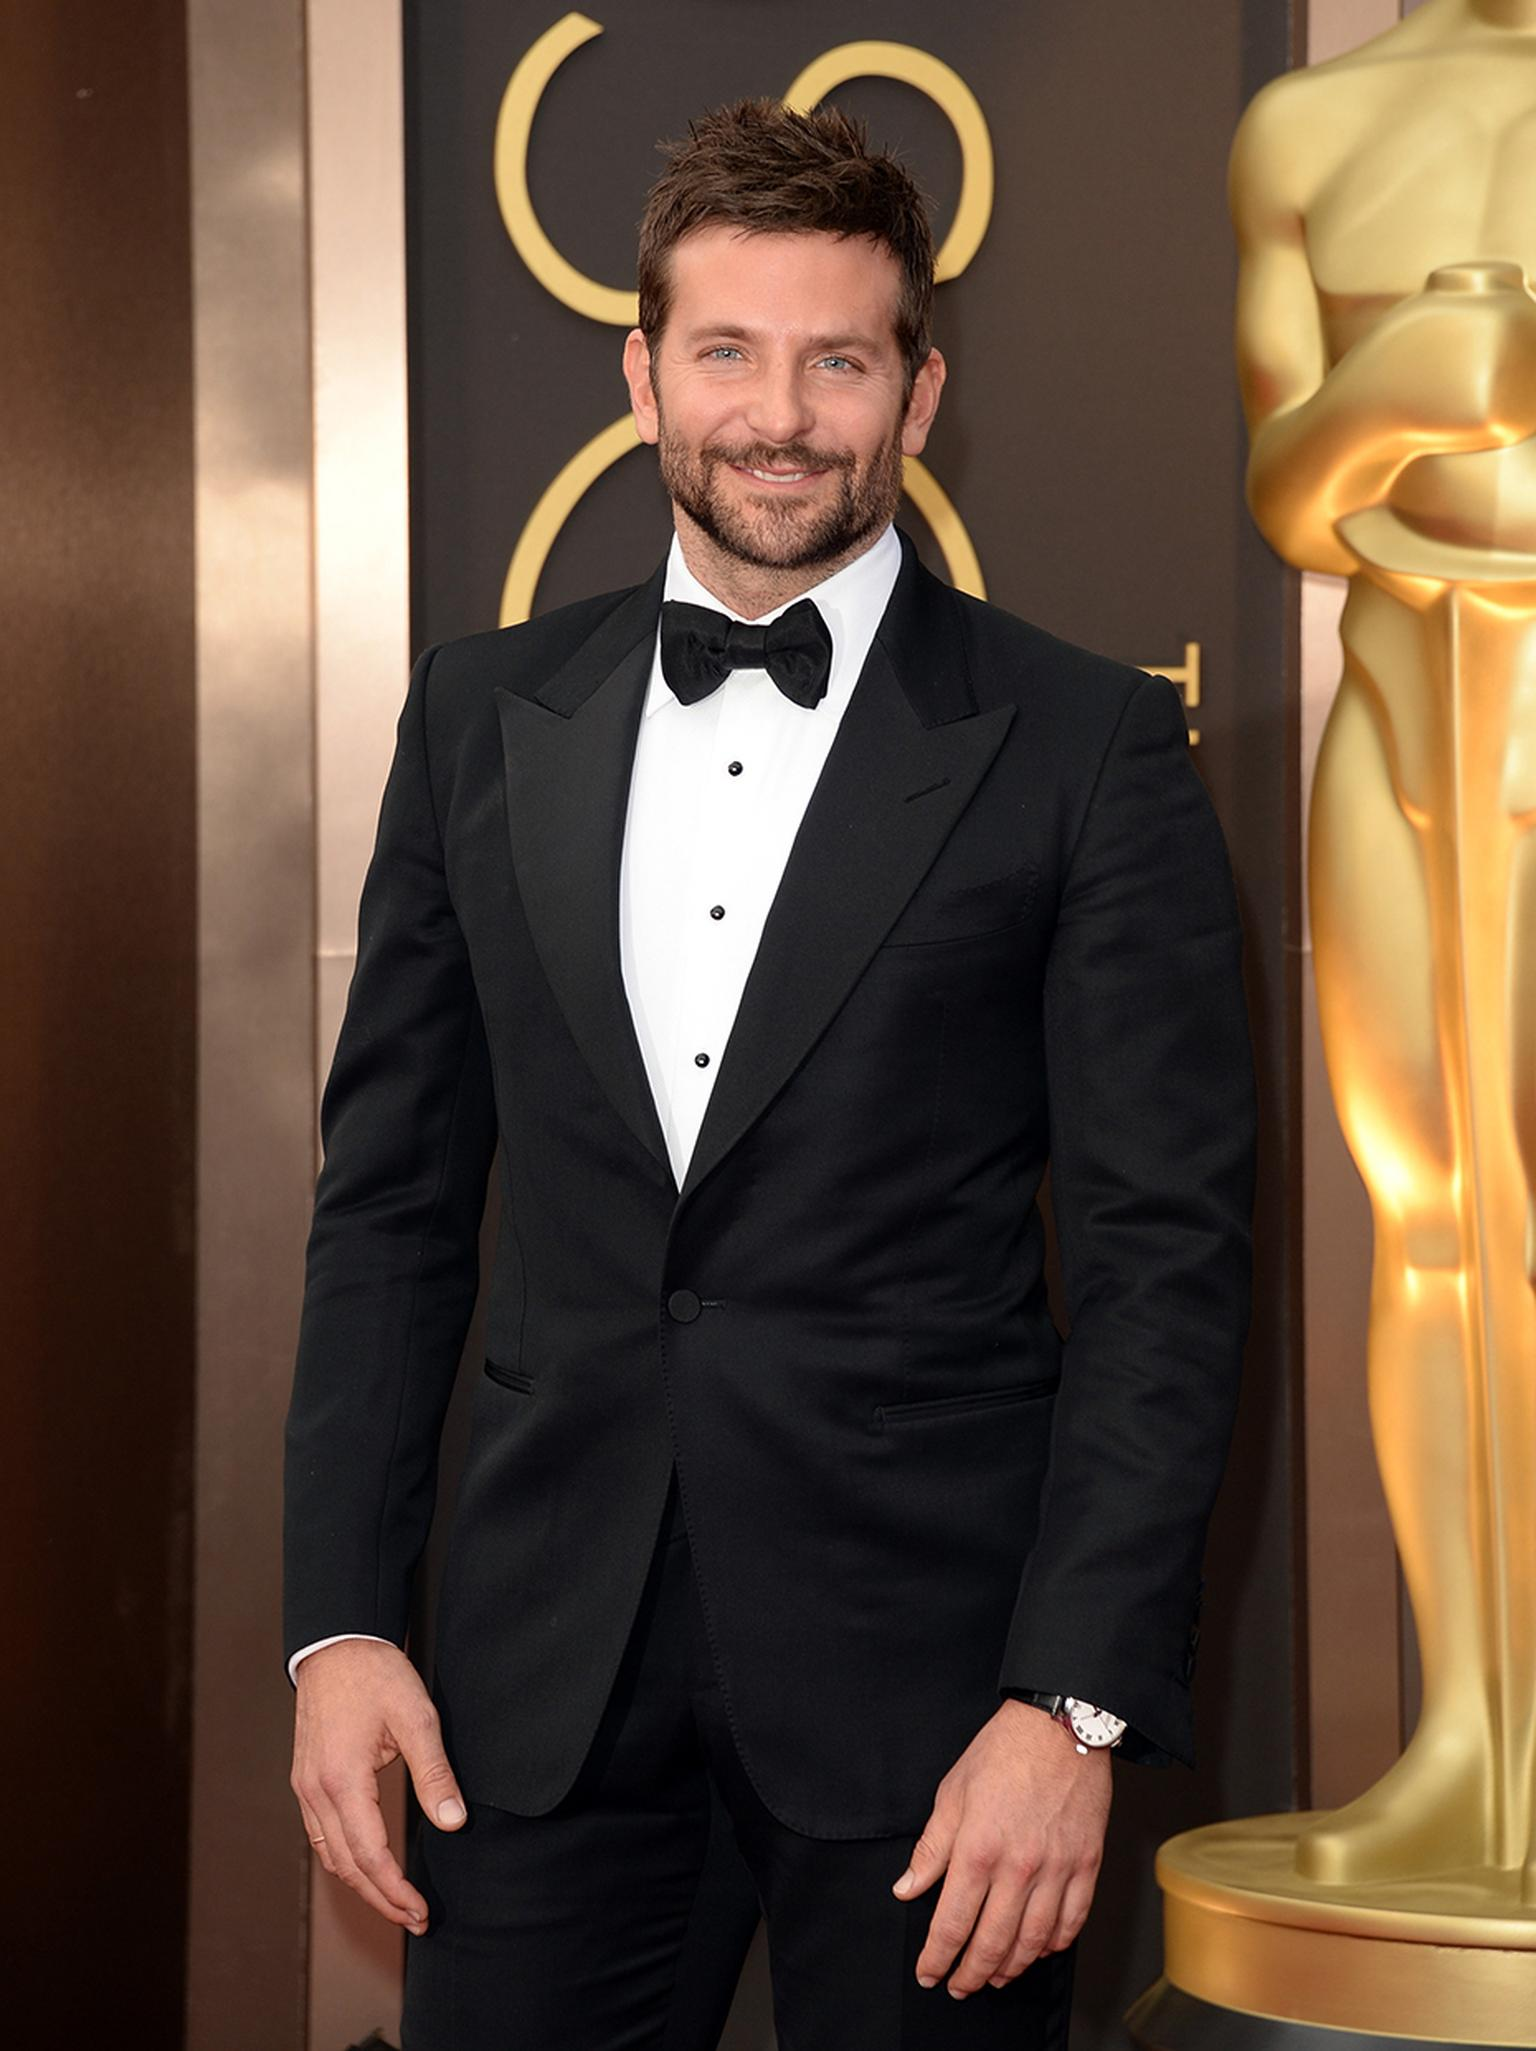 Nominated for Best Actor in a Supporting Role, Bradley Cooper wore Chopard's L.U.C 1937 swatch in stainless steel for his red carpet entrance